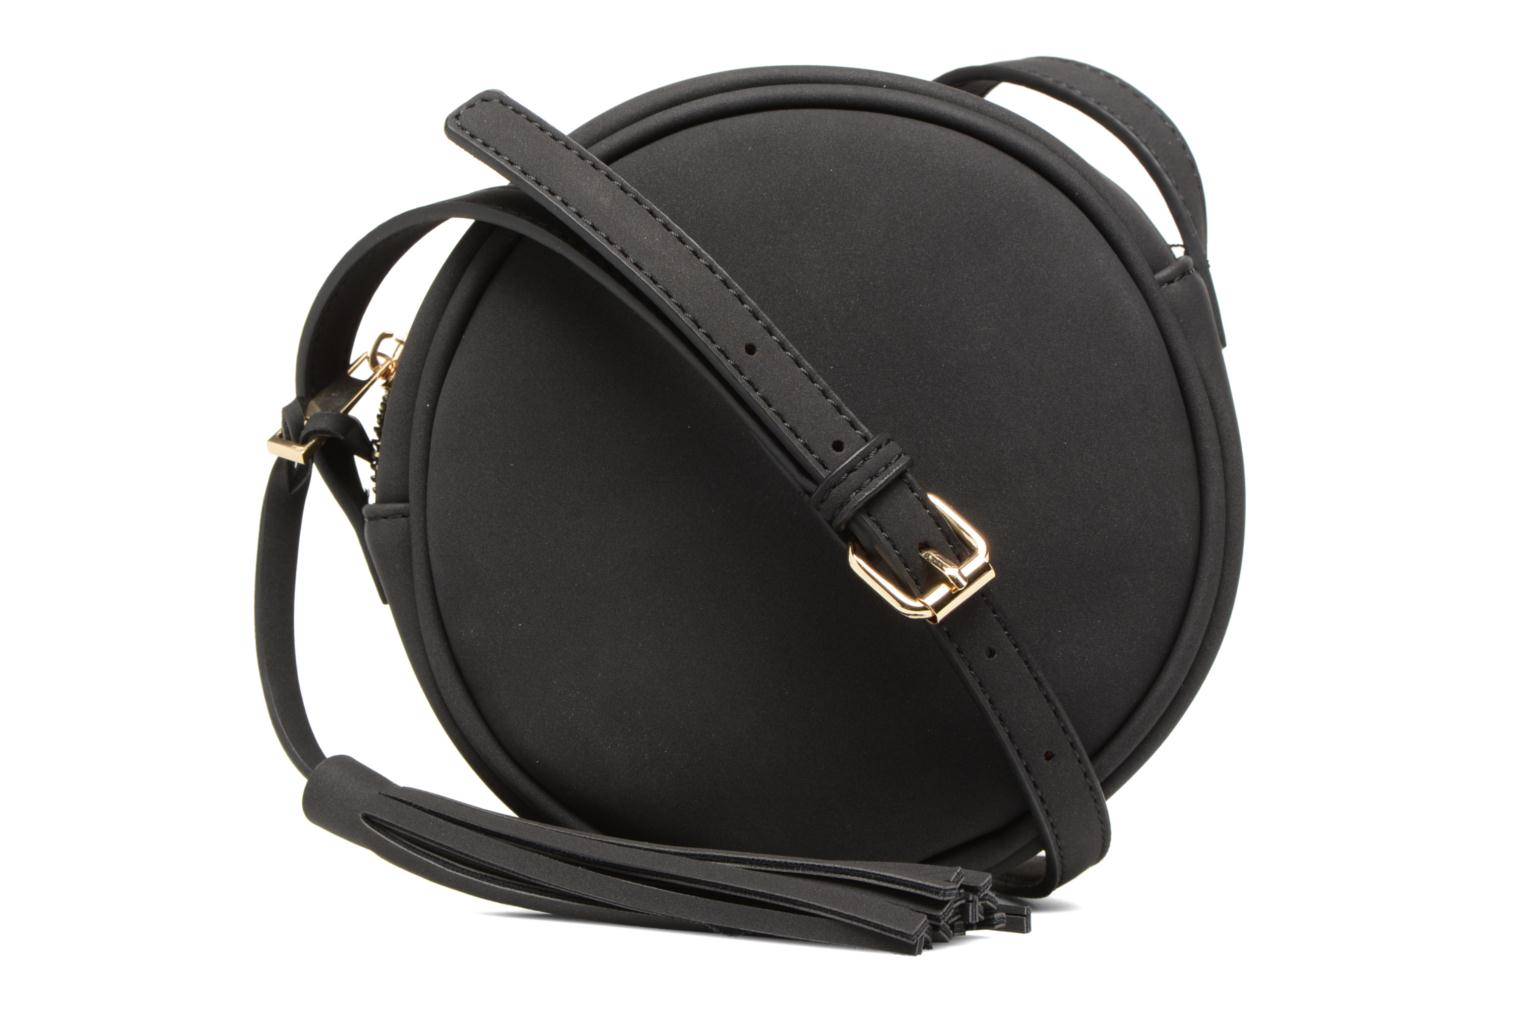 Pieces Galina Crossbody Galina Black Pieces Galina Crossbody Pieces Pieces Black Black Black Crossbody Galina Galina Pieces Crossbody AfBz5qf7n